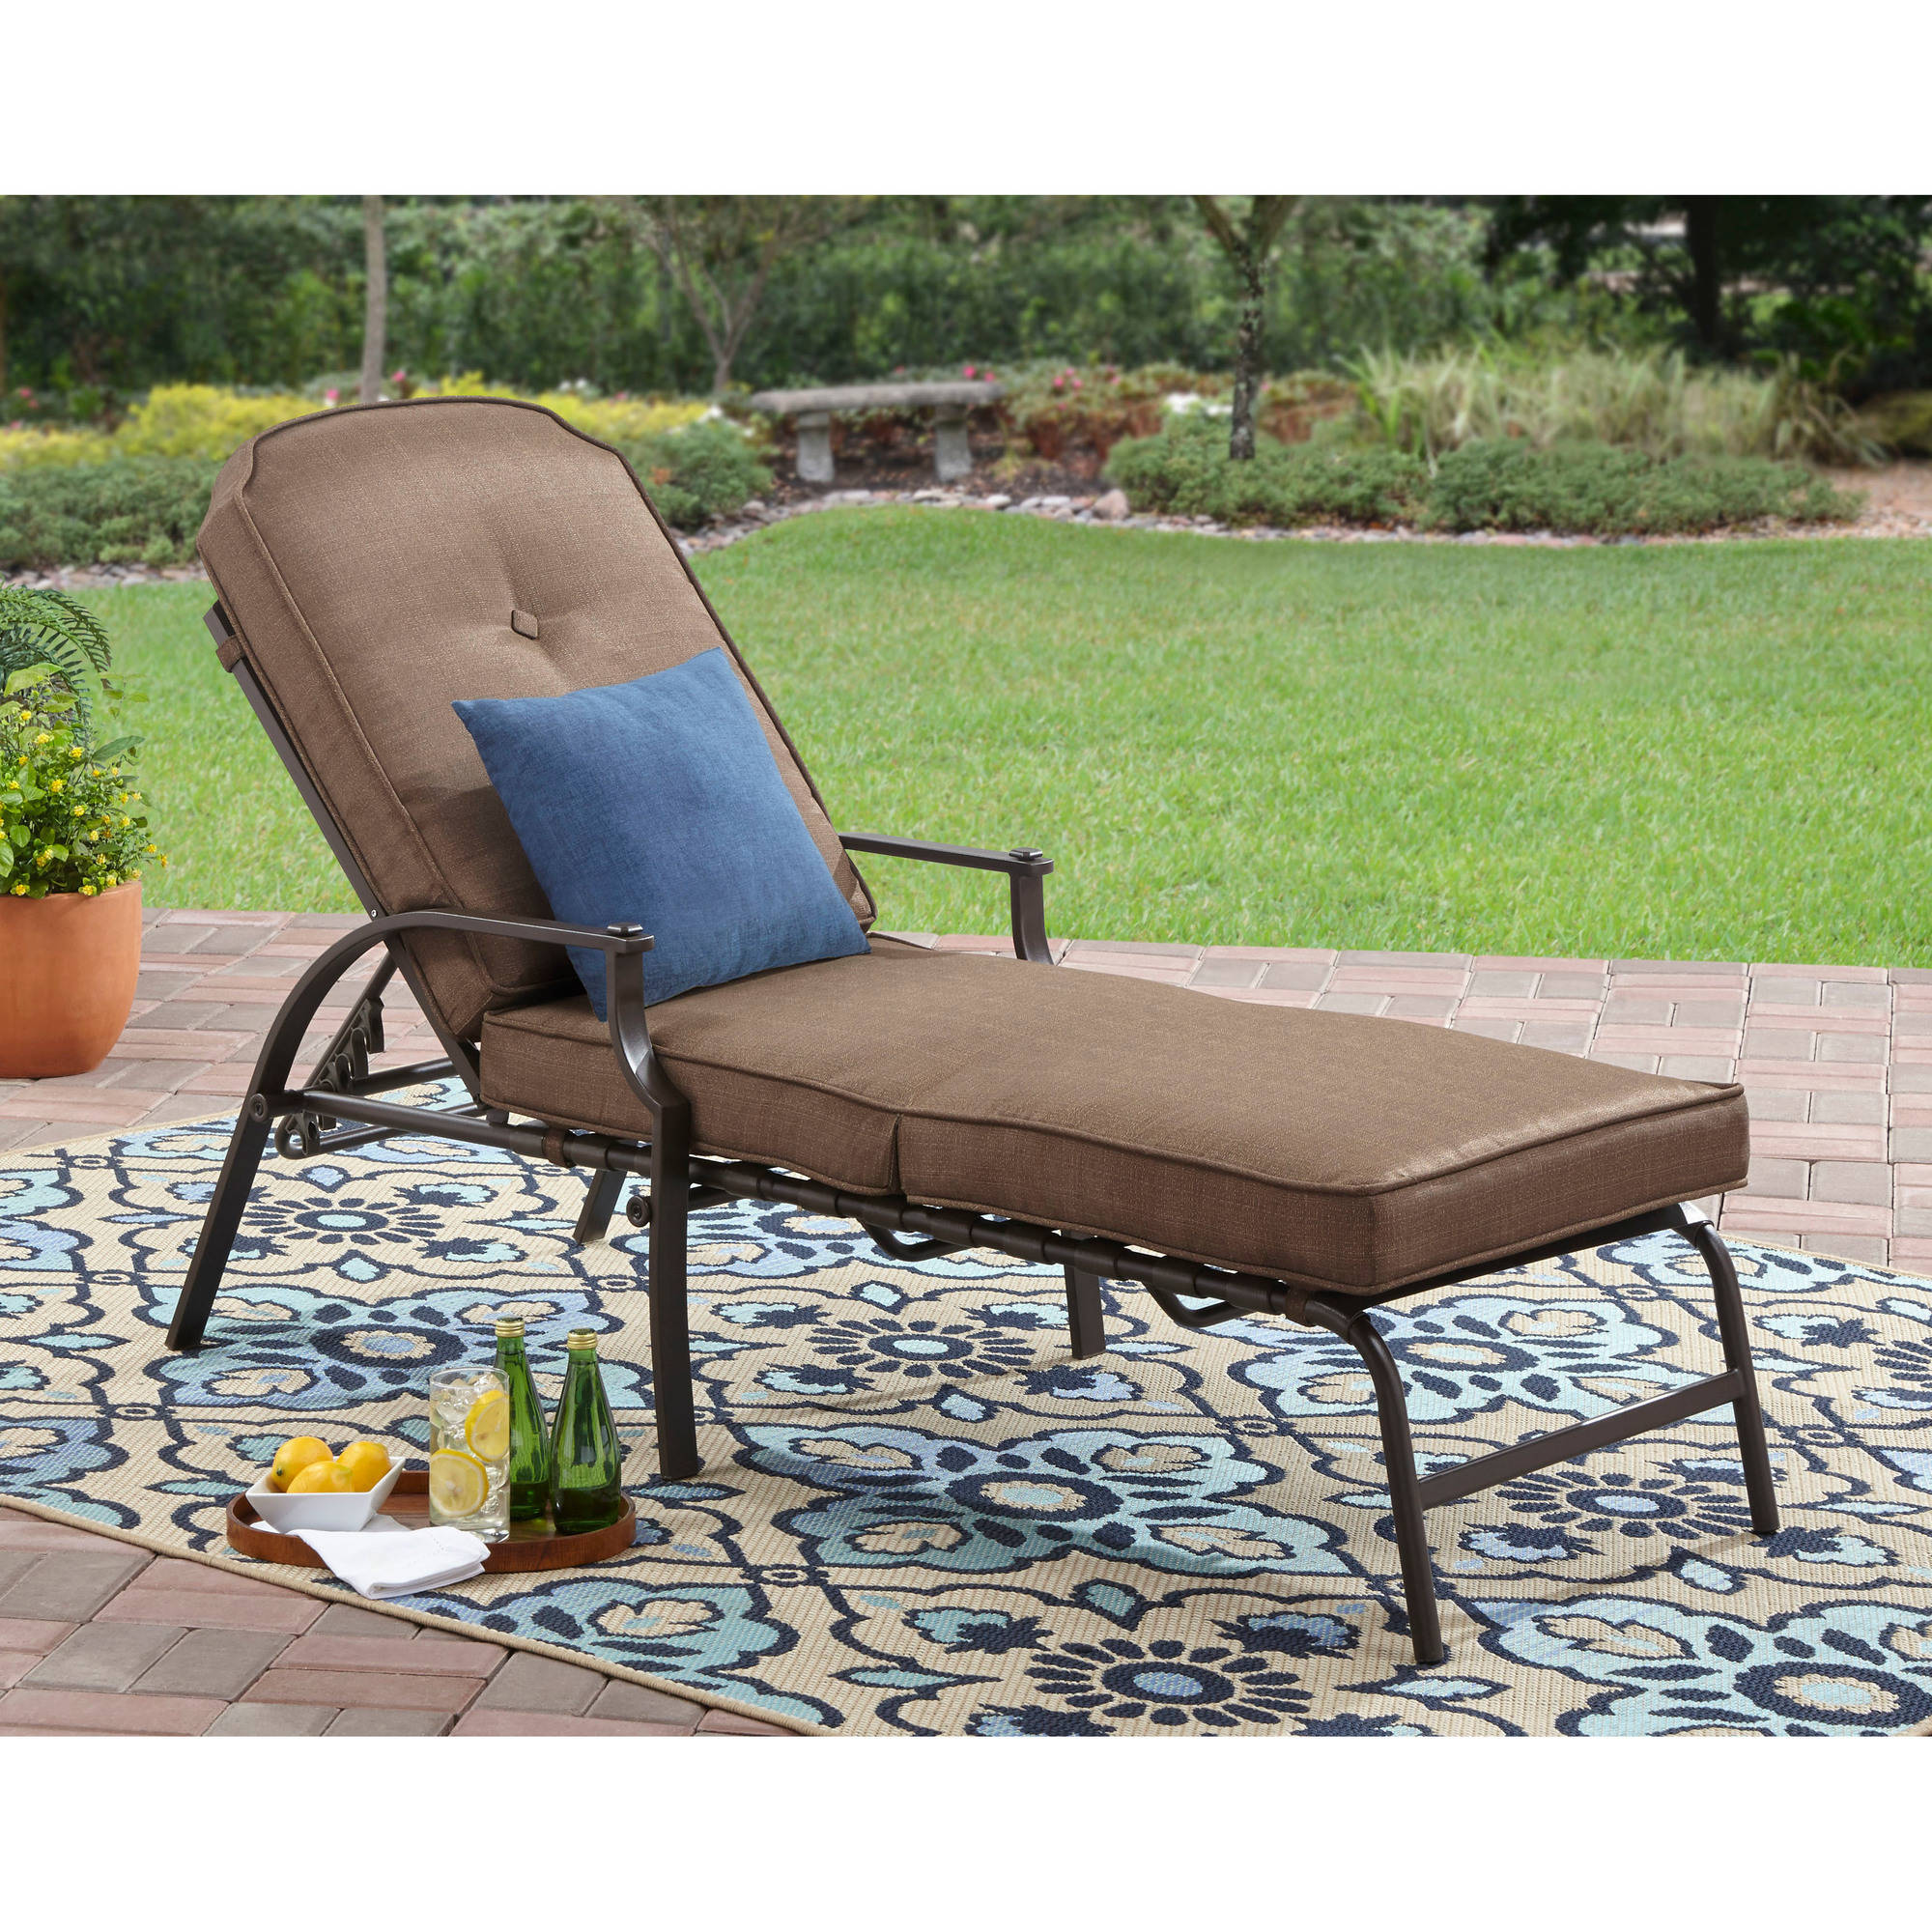 Camco Zero Gravity Chair Tan Walmart